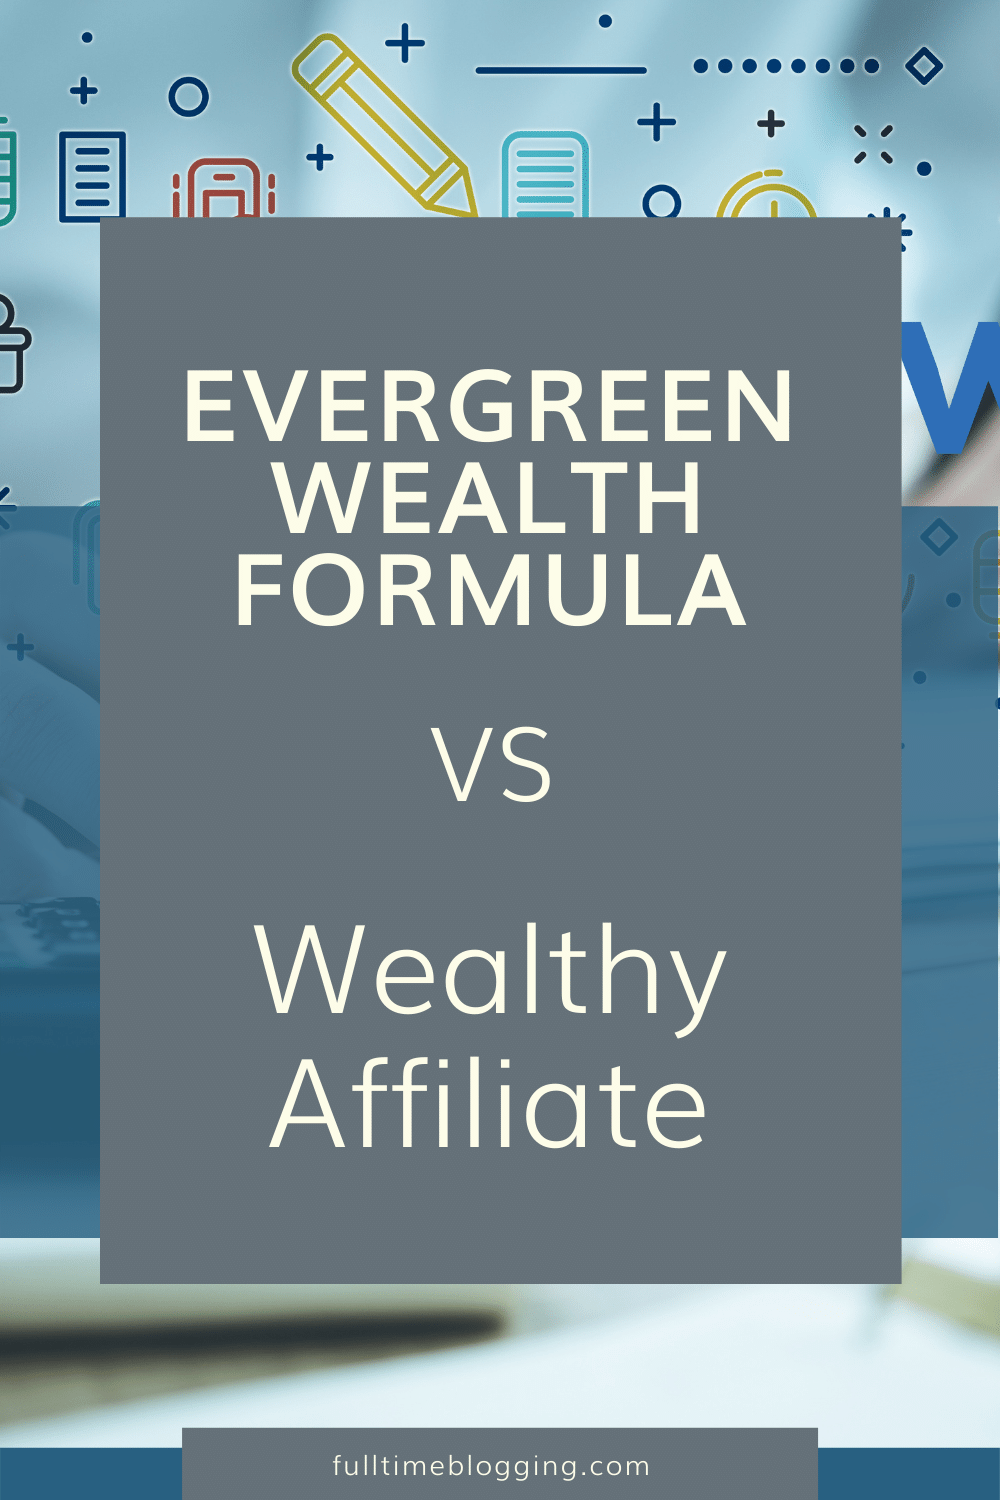 The Evergreen Wealth Formula Or